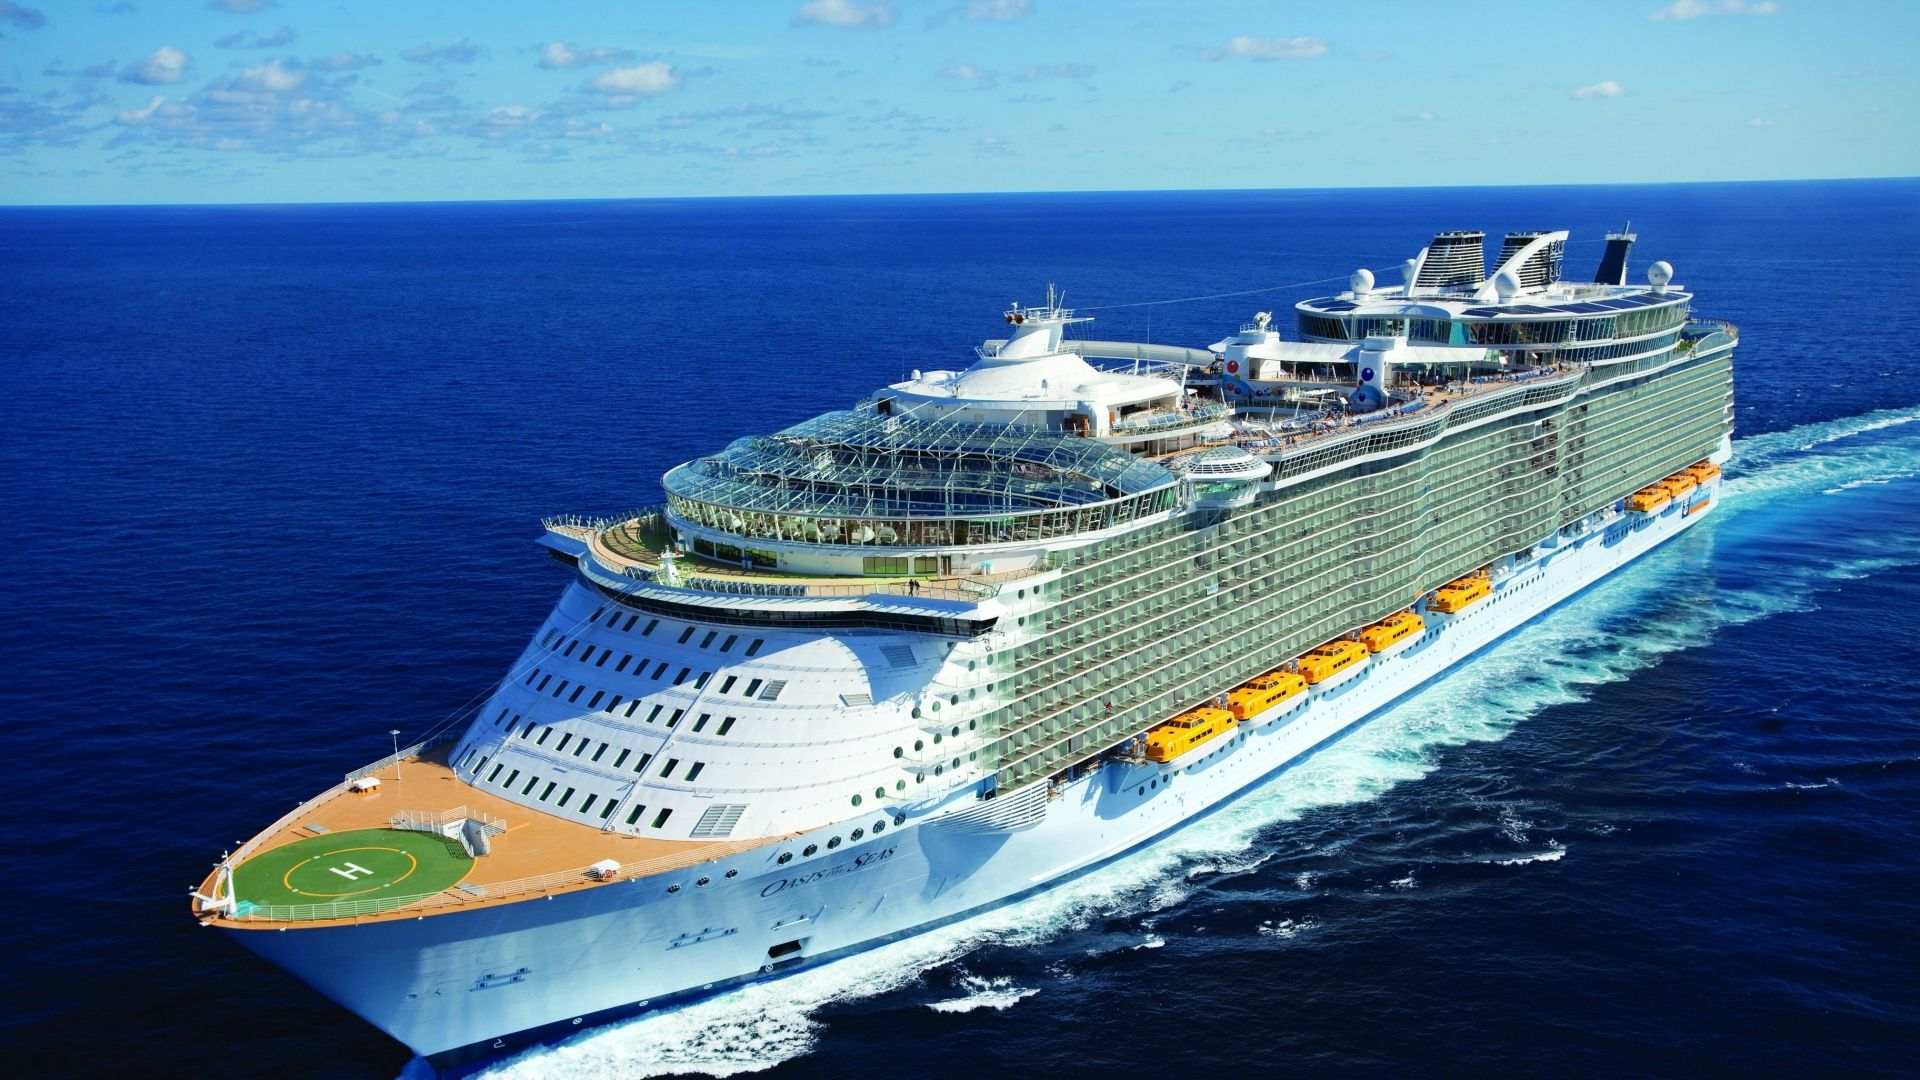 Free Ship Wallpapers Widescreen  Royal caribbean cruise